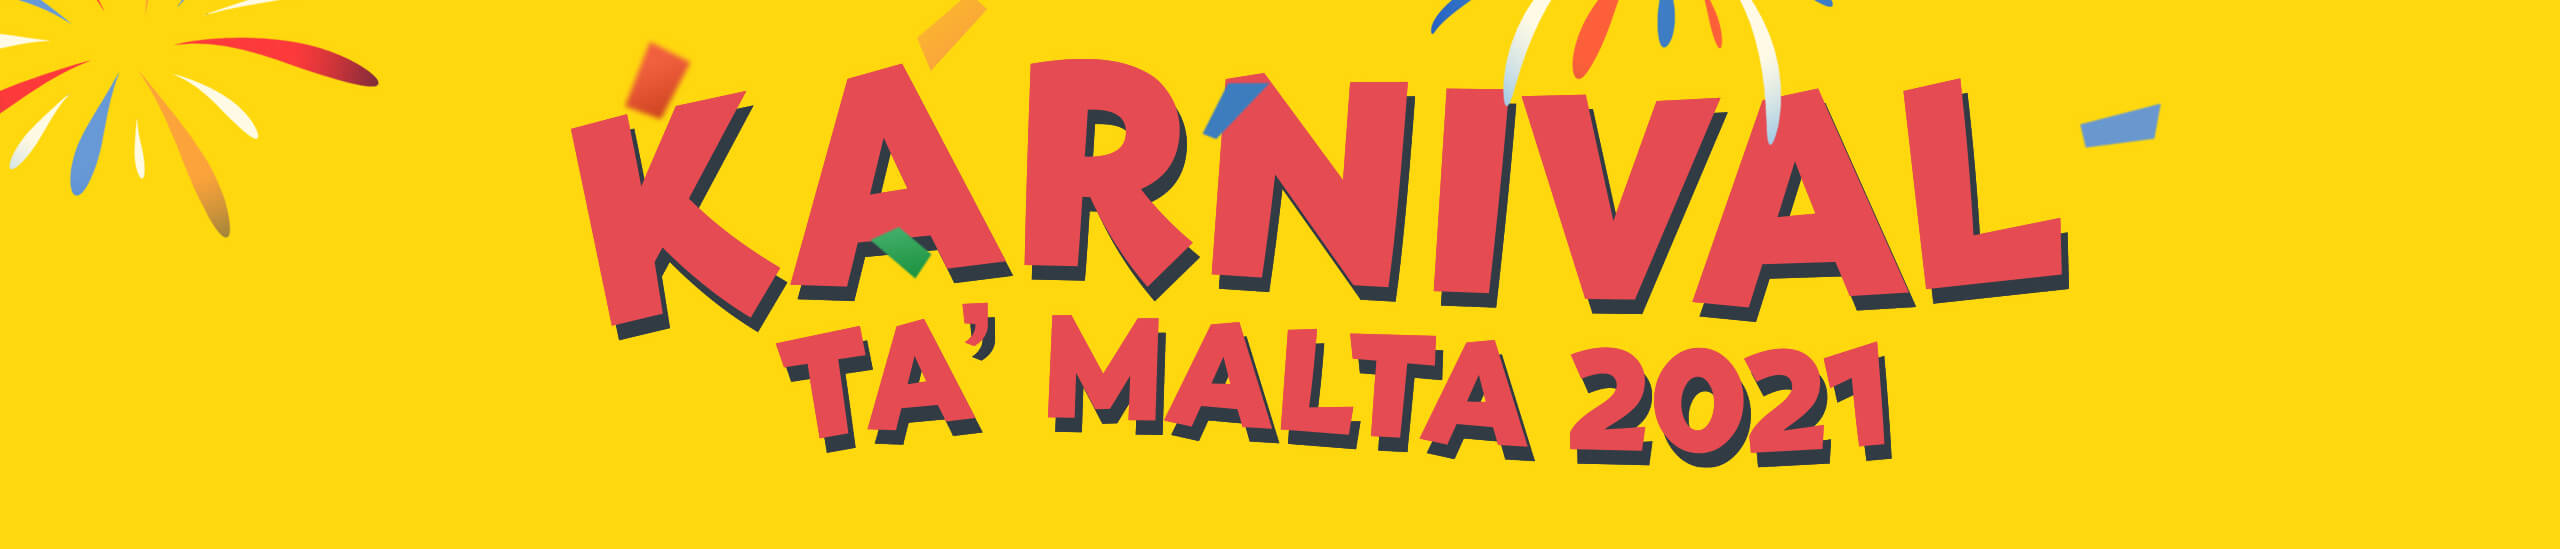 Festivals-Malta---Behance-2-slices-1_02 case study